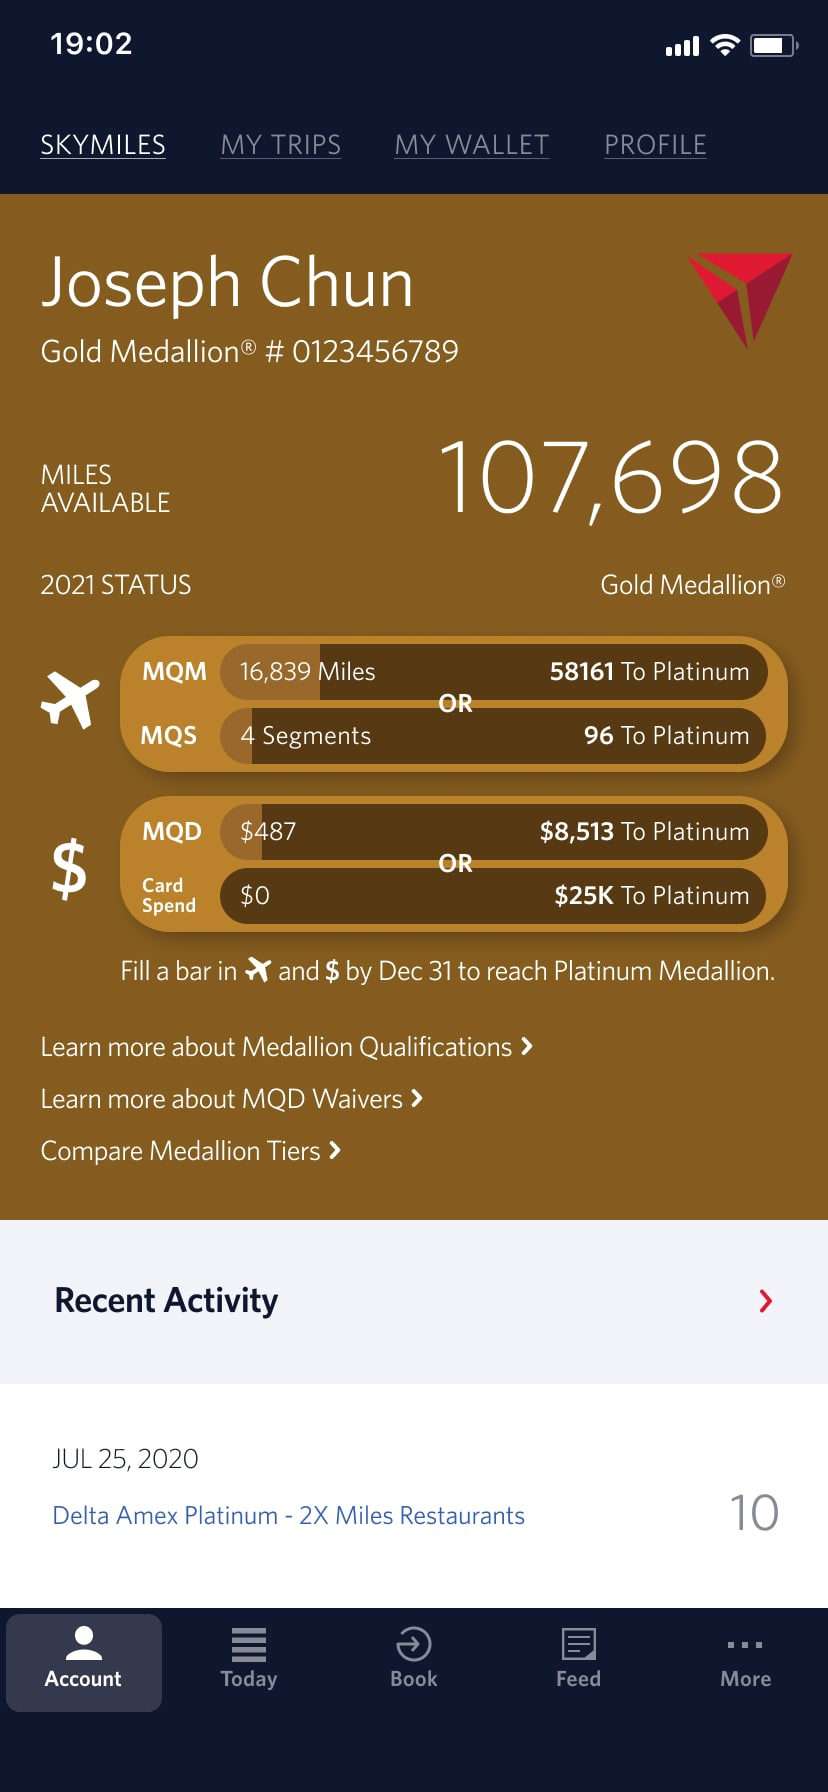 a screenshot of a redesigned Delta Airlines App Skymiles screen